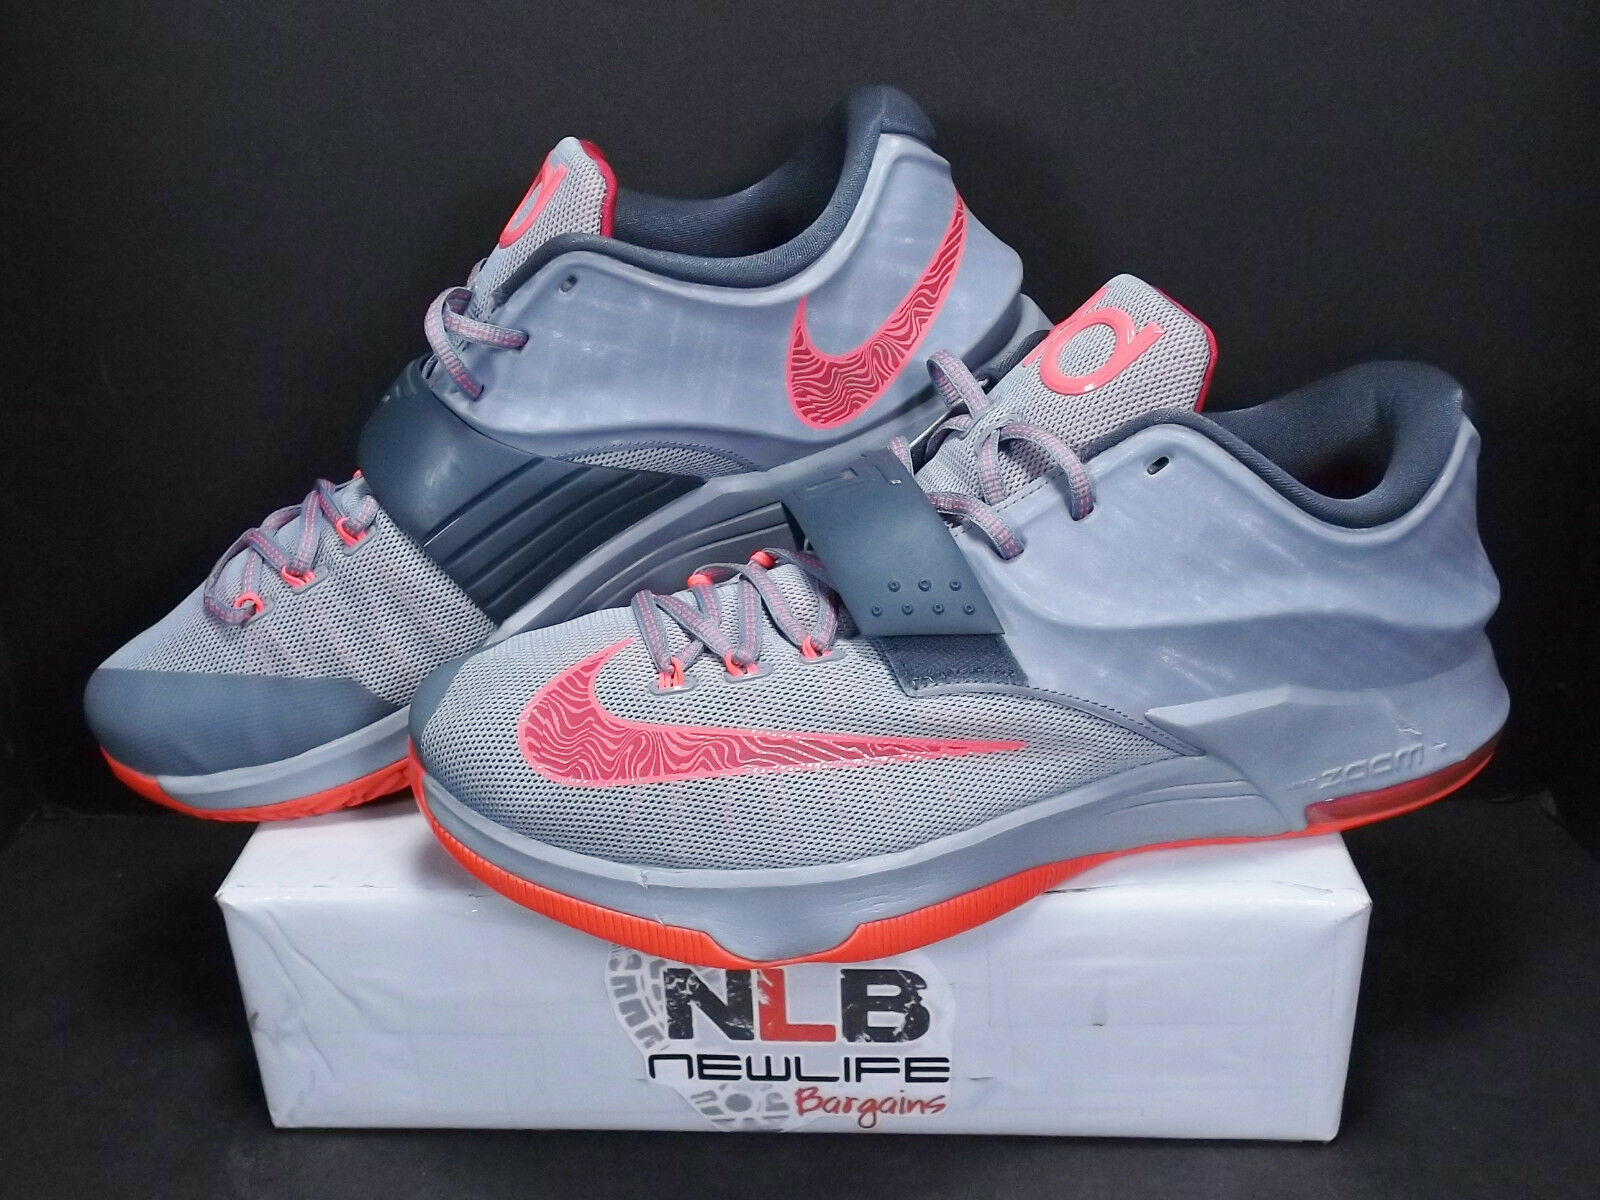 Nike Air Zoom KD 7 VII Calm Before Storm Grey/Hyper Punch 653996-060 Men's Sz 14